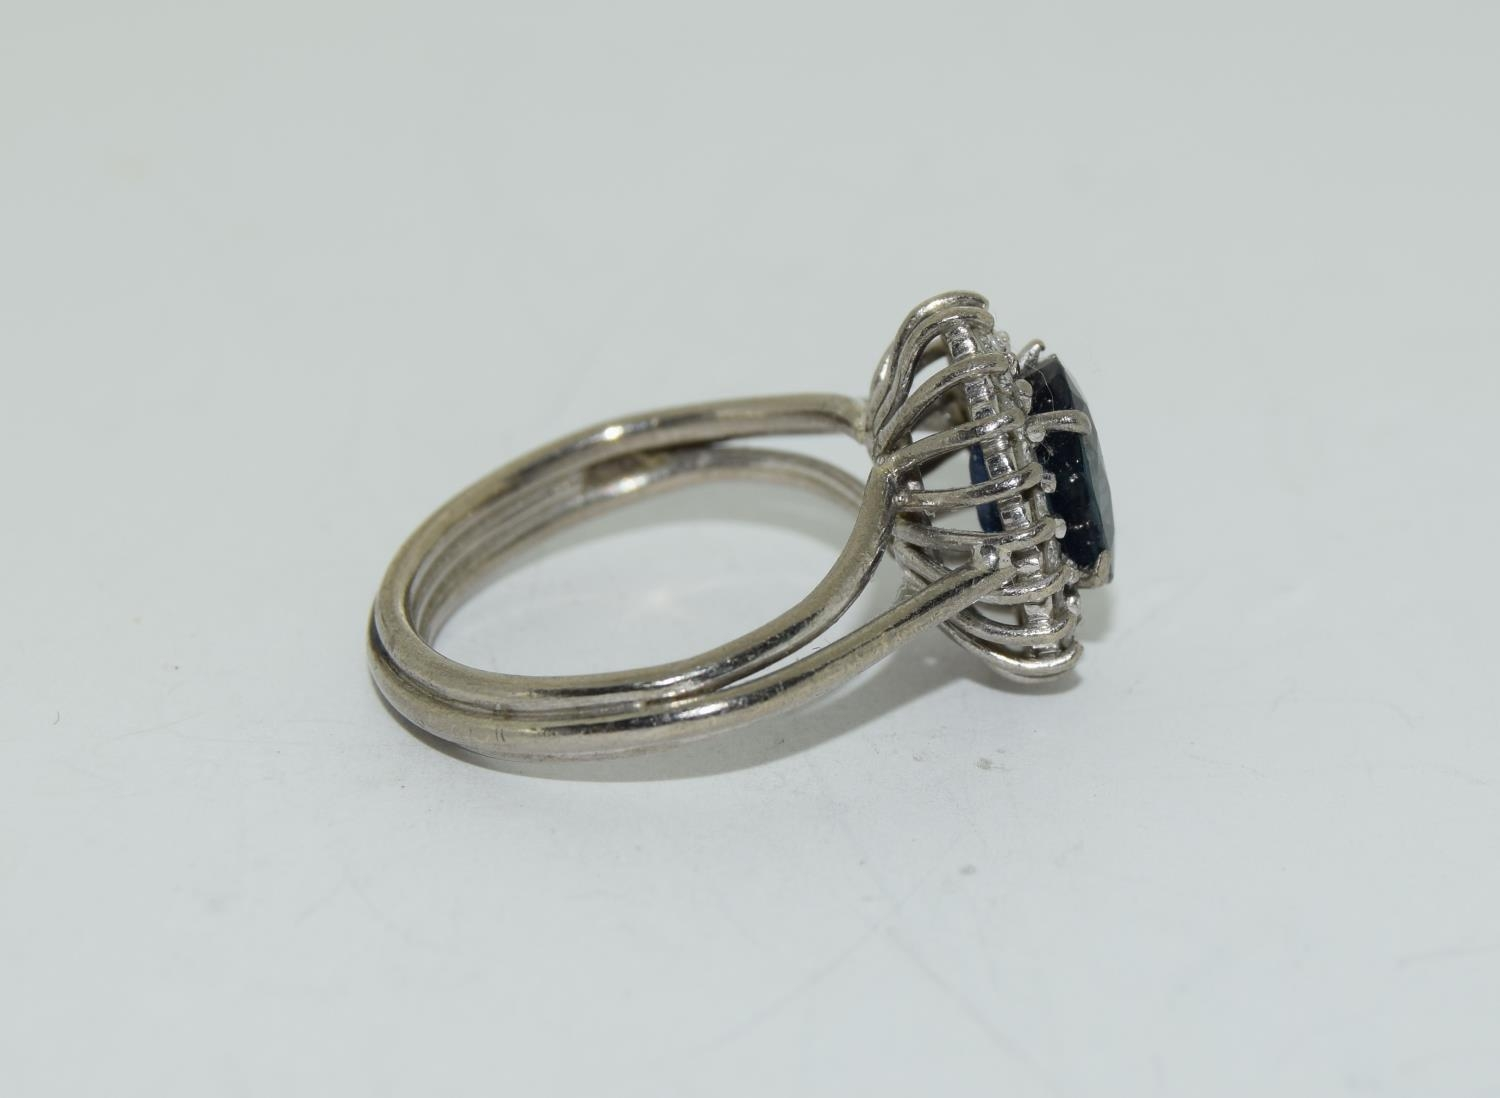 An 18ct white gold ladies diamond and sapphire ring, Size L - Image 2 of 6